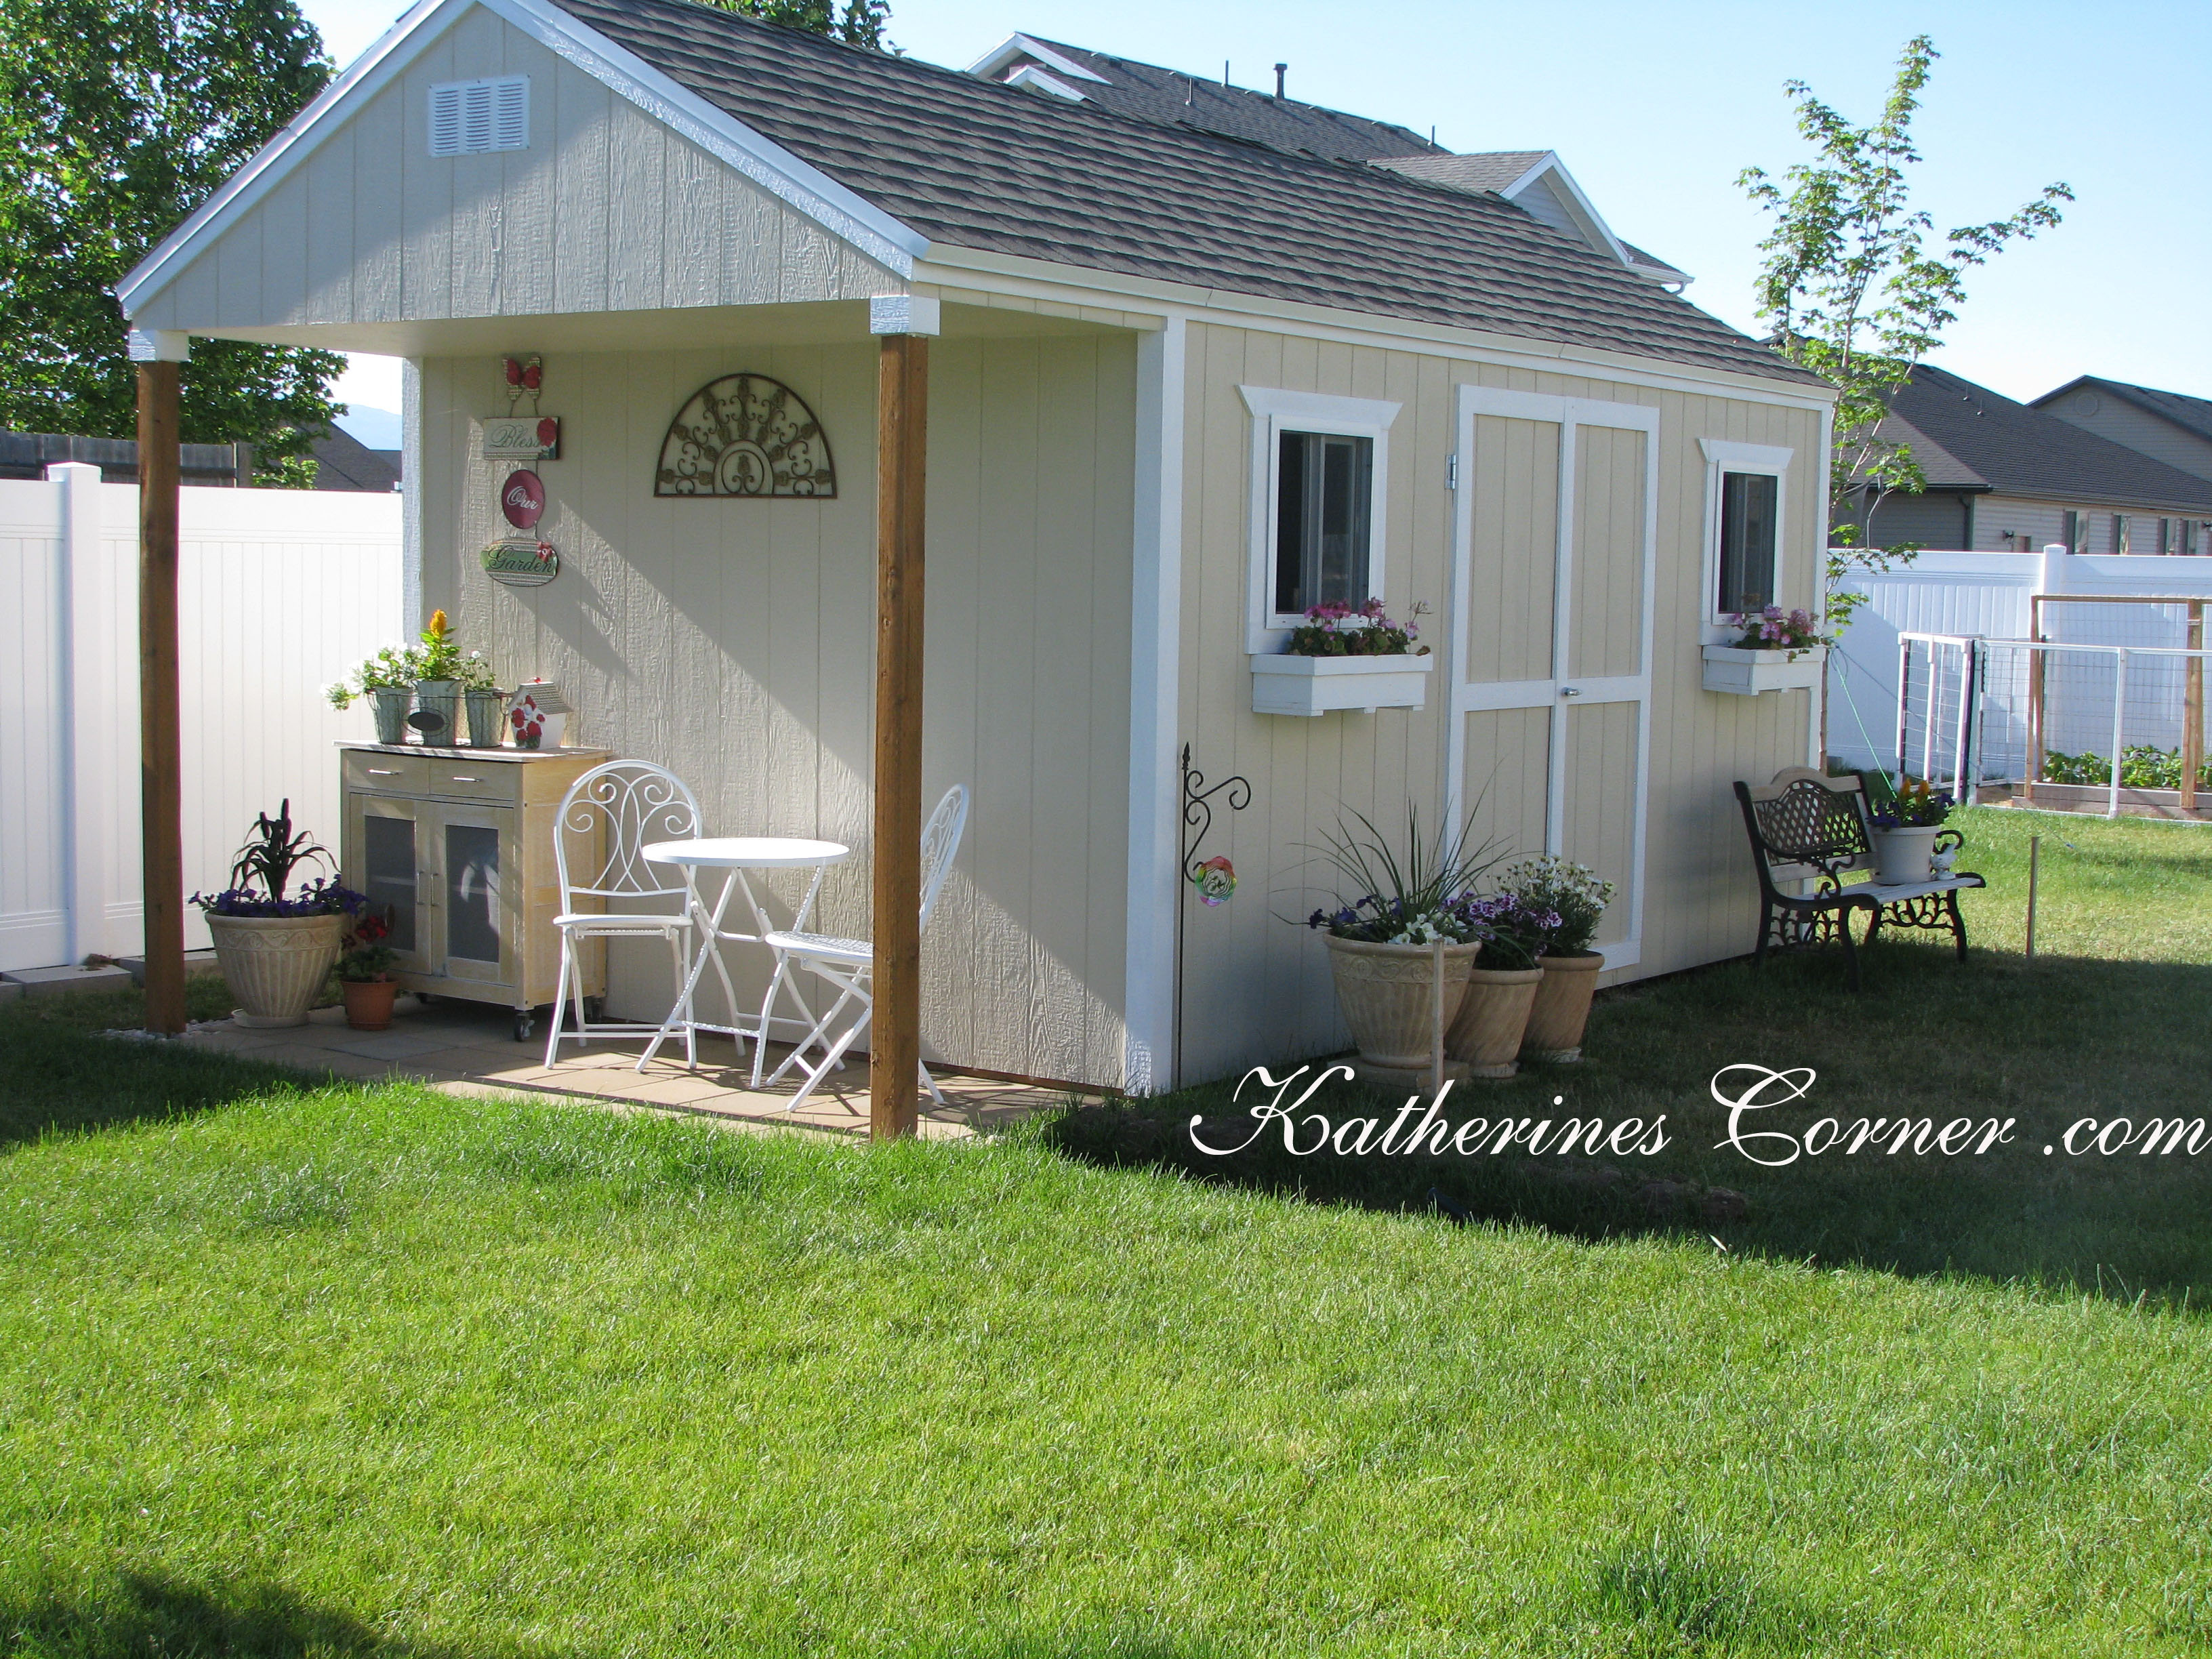 Green garden katherines corner - Cottage garden shed pictures ...